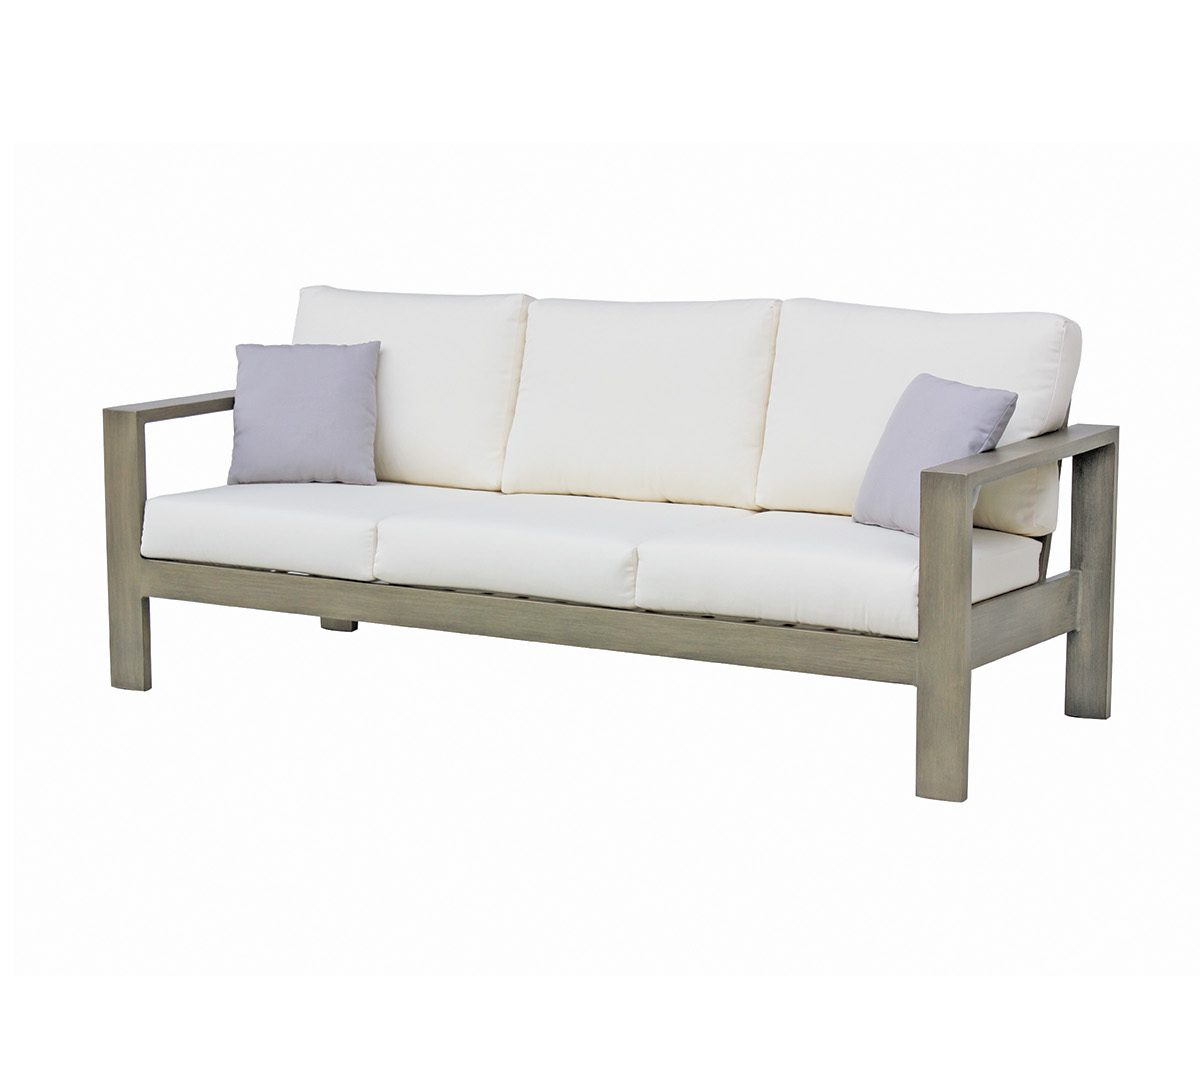 Park Lane Sofa Ratana | Patio Bay